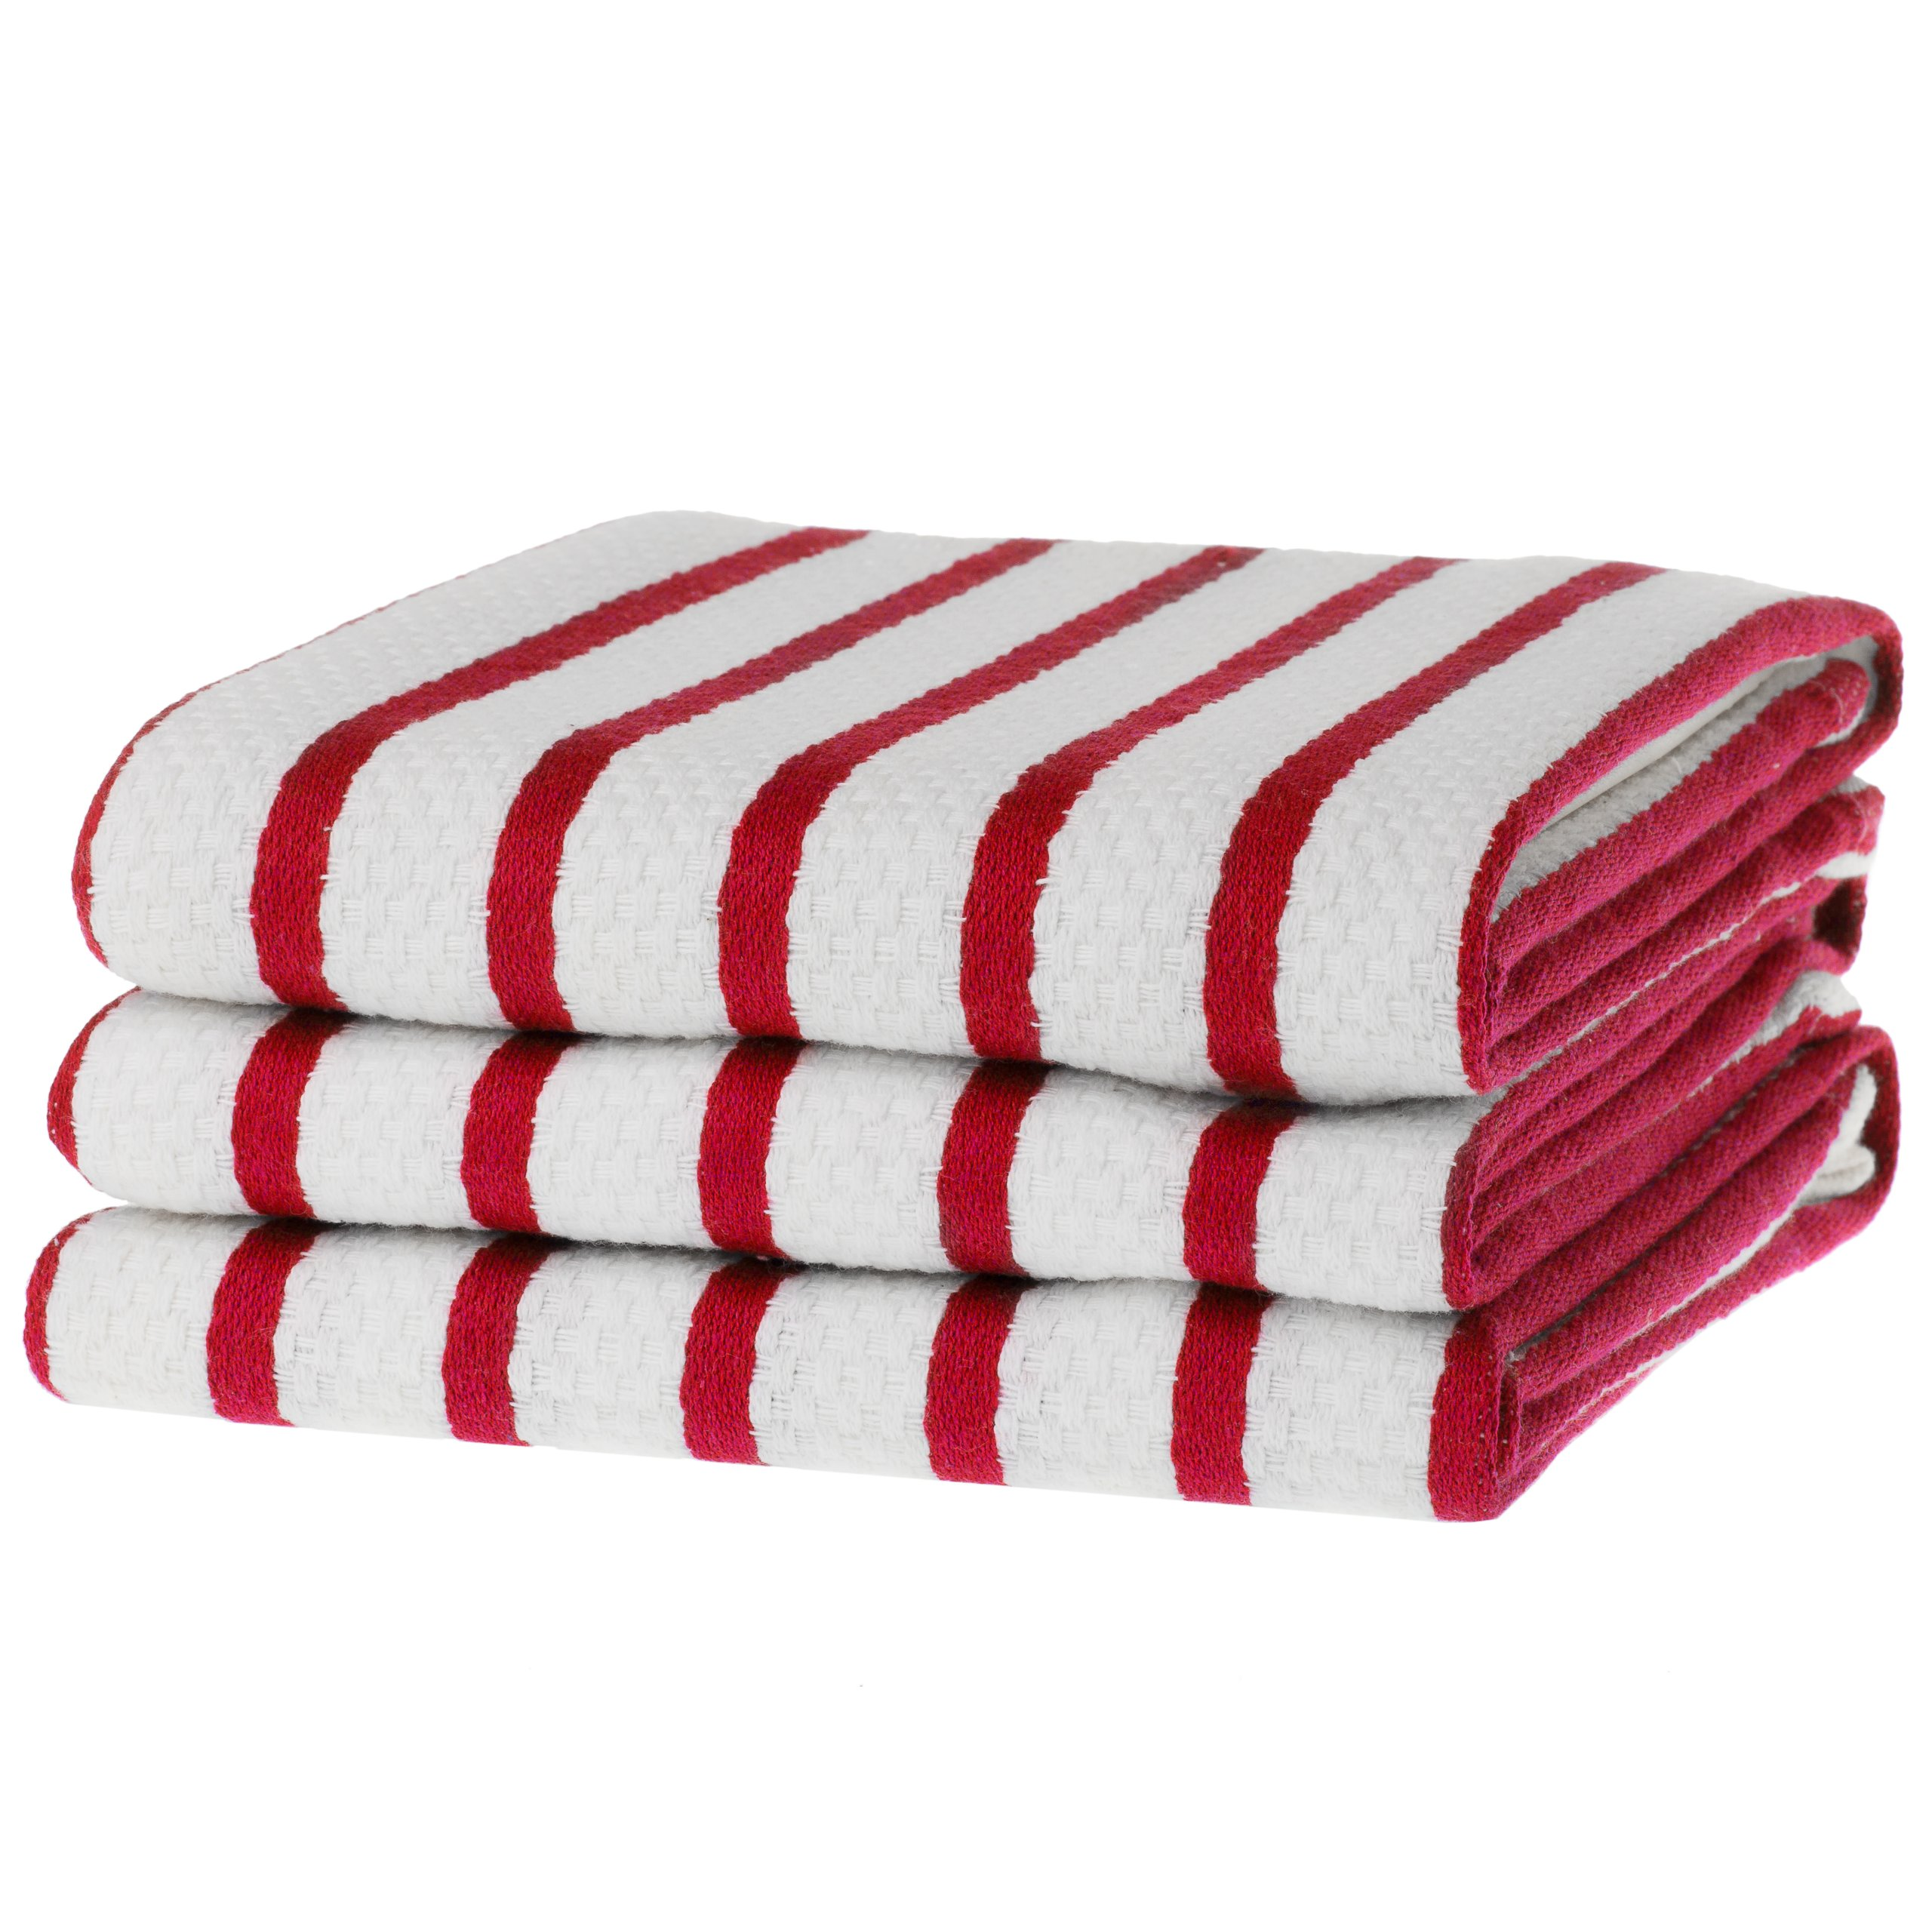 KAF Home Basket Weave Kitchen Towels, White with Red Stripes, Set of 3, 100% Cotton, Over-sized & Super Absorbent